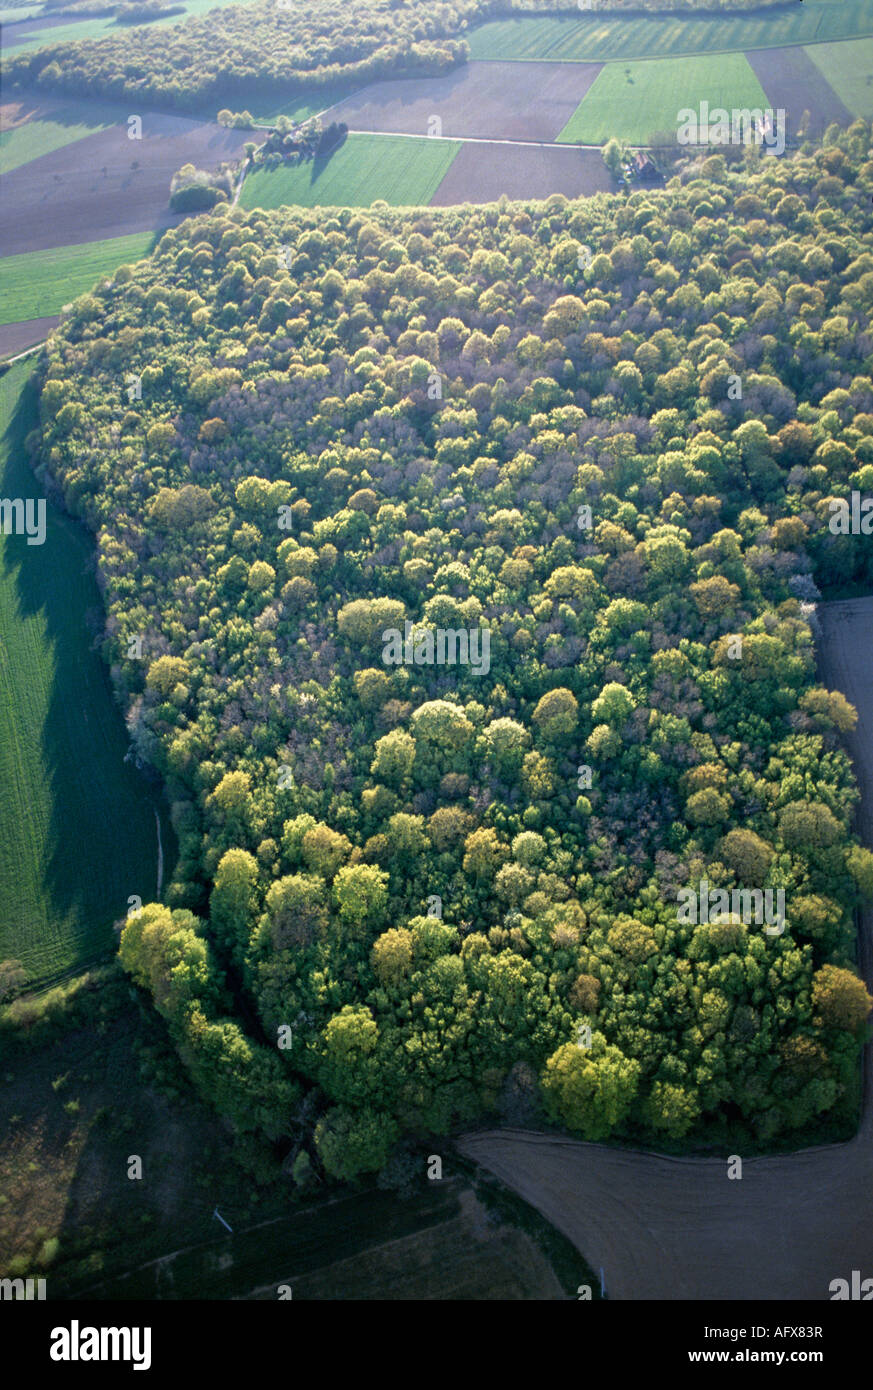 aerial view ,aerien,aerial,vue aerienne,forets yonne/loiret france - Stock Image